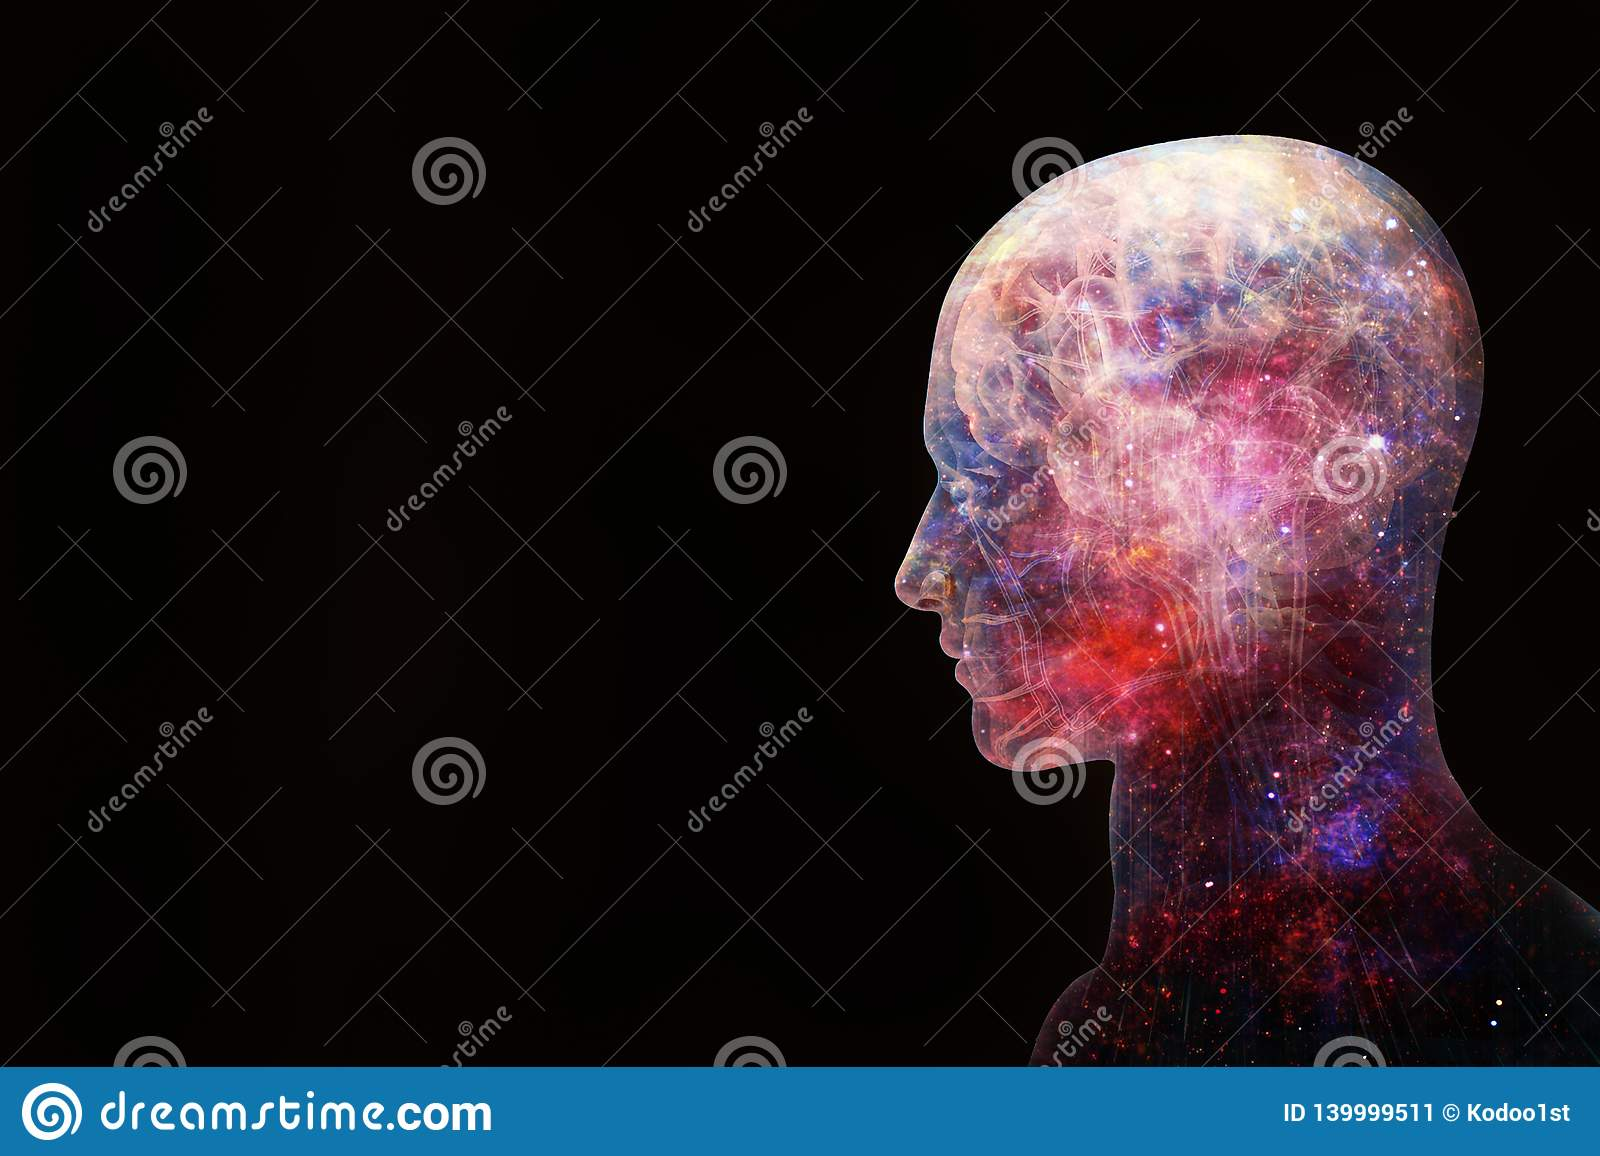 Abstract Artistic 3d Illustration Of A Modern Human Artificial Intelligent Interface On A Black Background